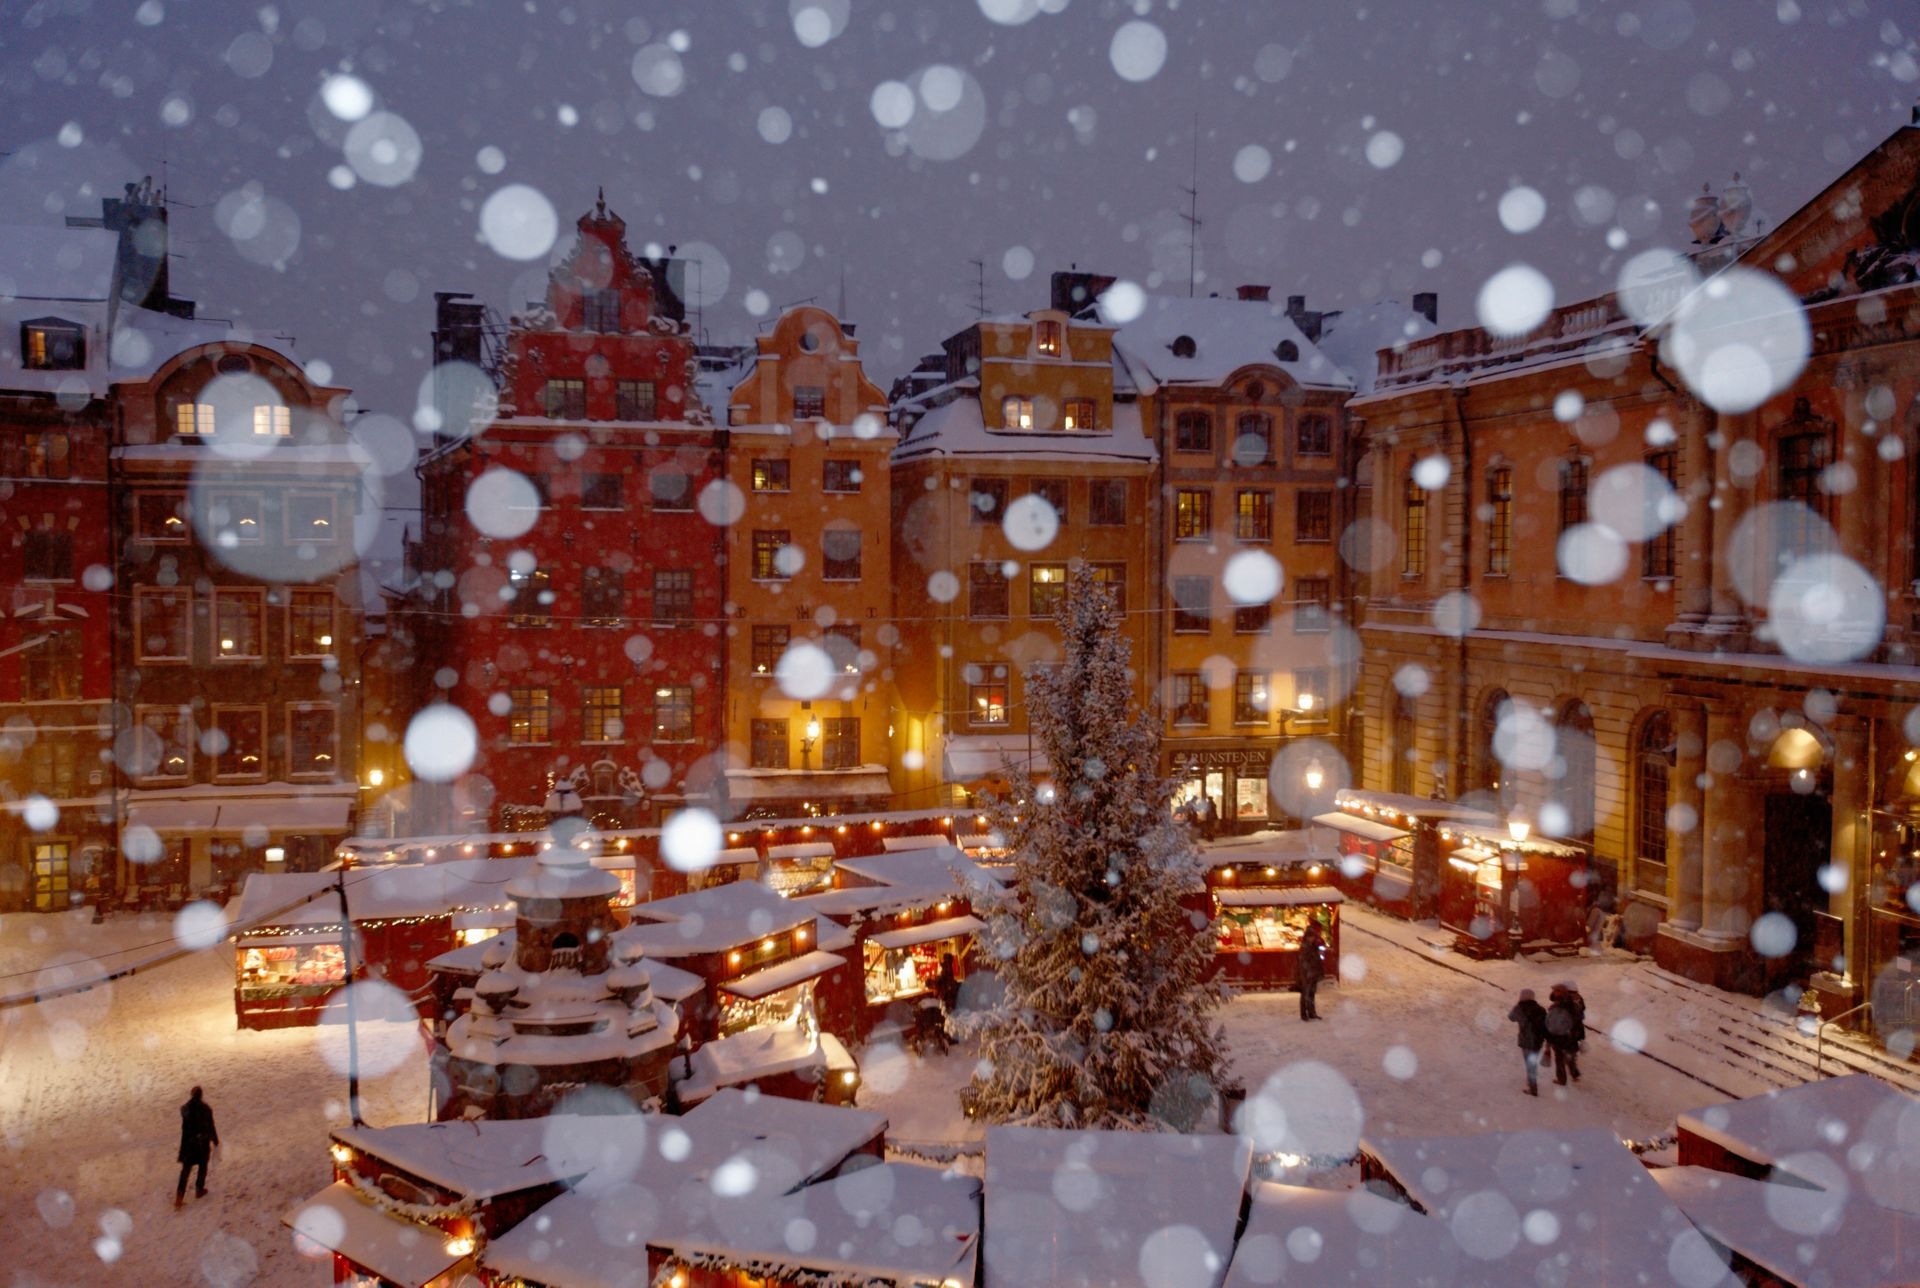 A snowy Christmas market in a square in Stockholm's Old Town.